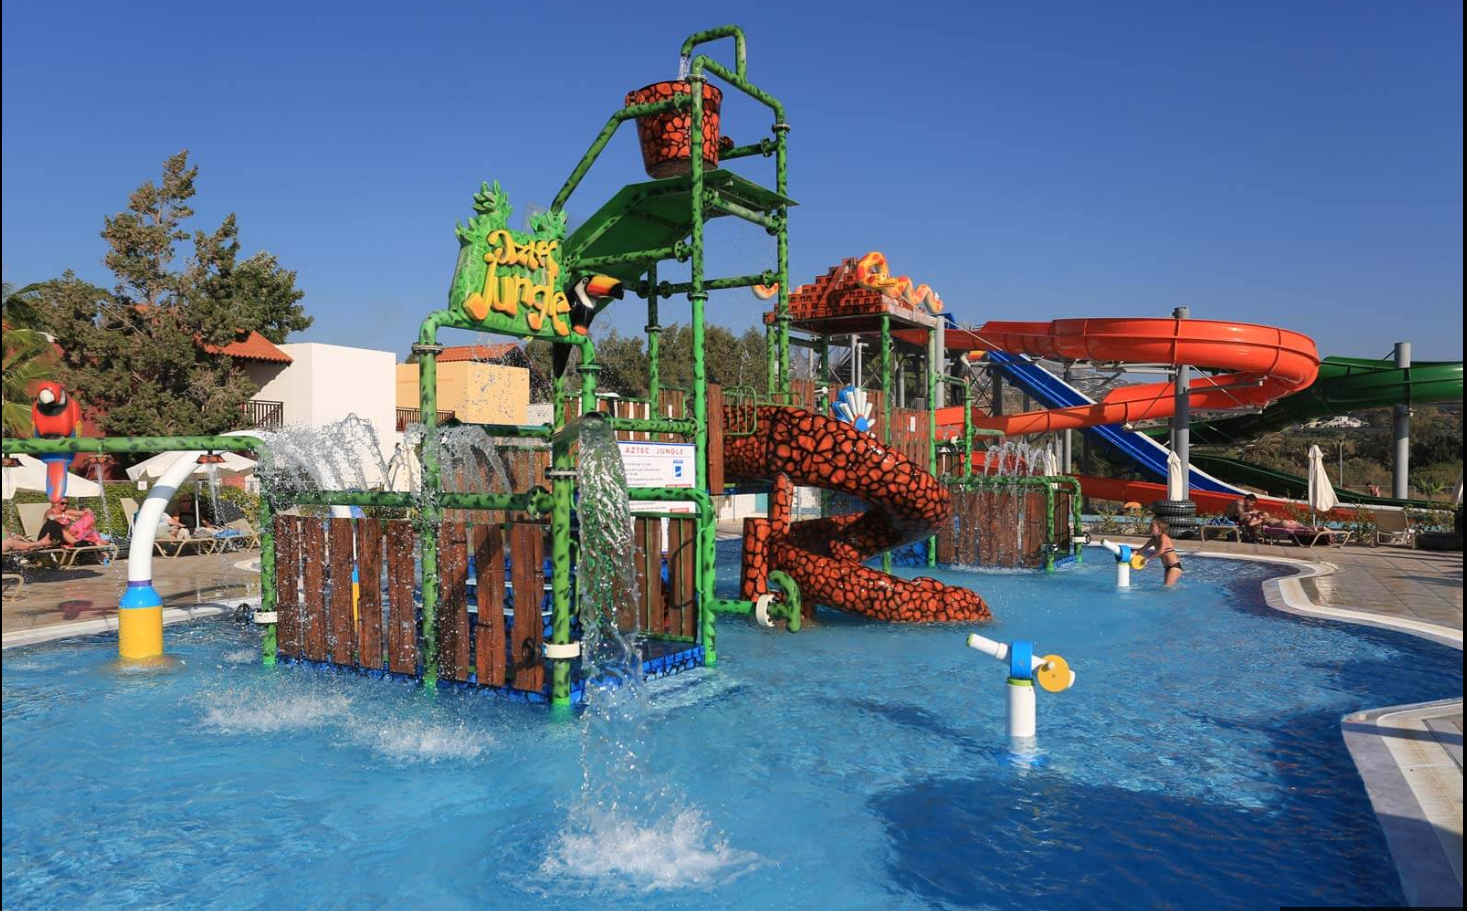 AQUA SOL HOLIDAY VILLAGE AND WATER PARK